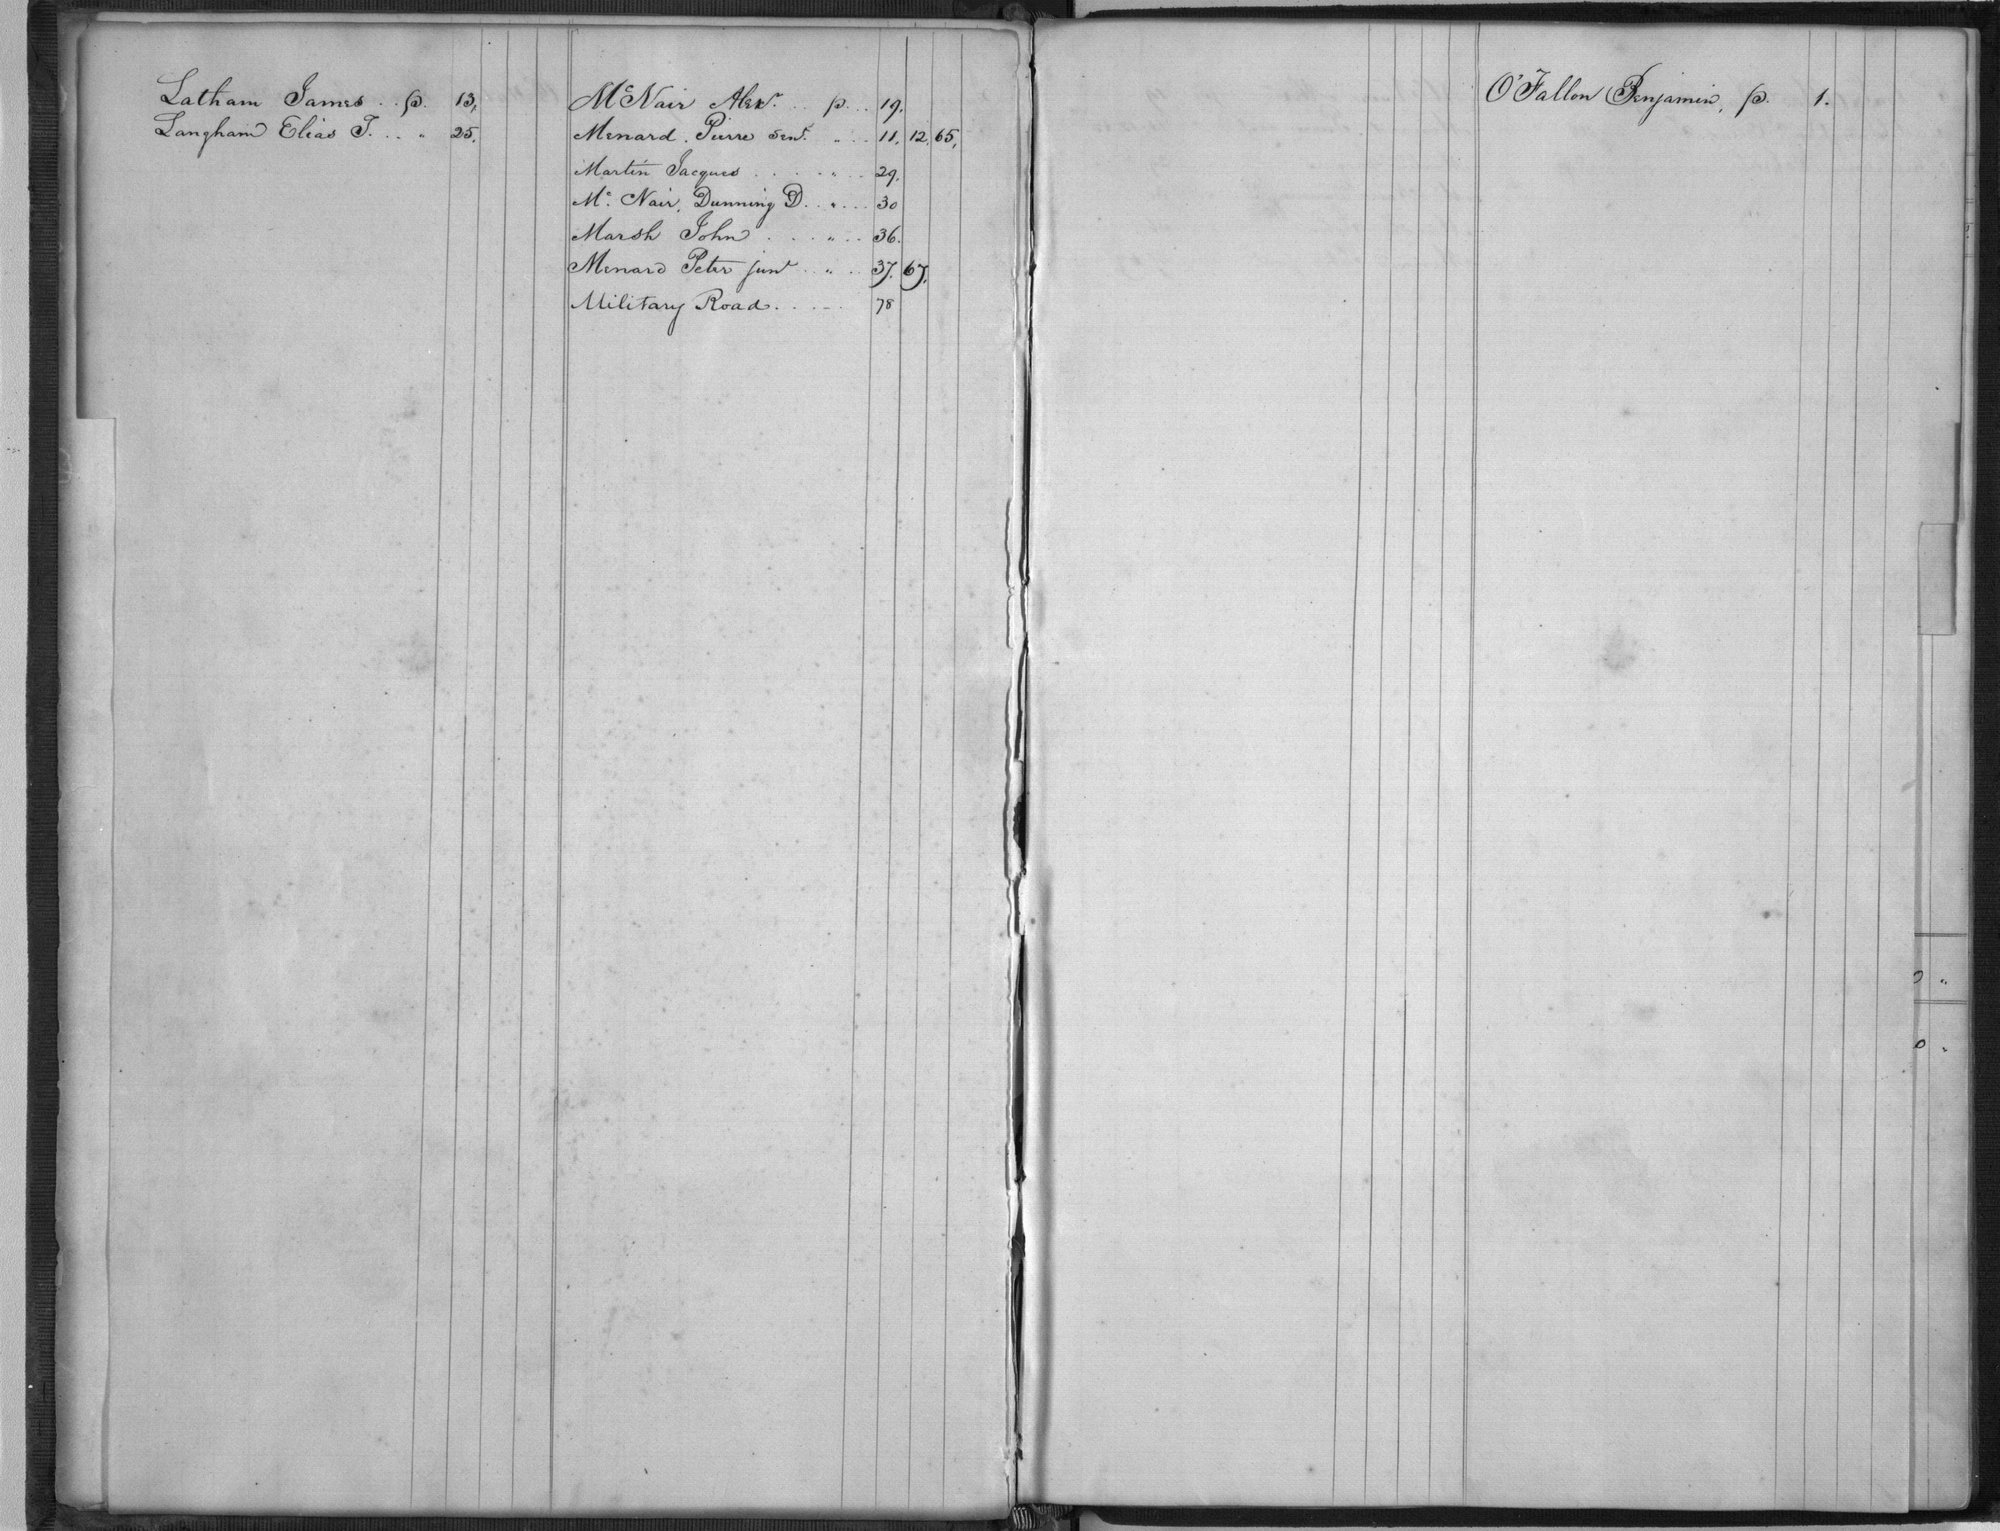 United States Office of Indian Affairs, Central Superintendency, St. Louis, Missouri. Volume 26, Accounts - Index L - O